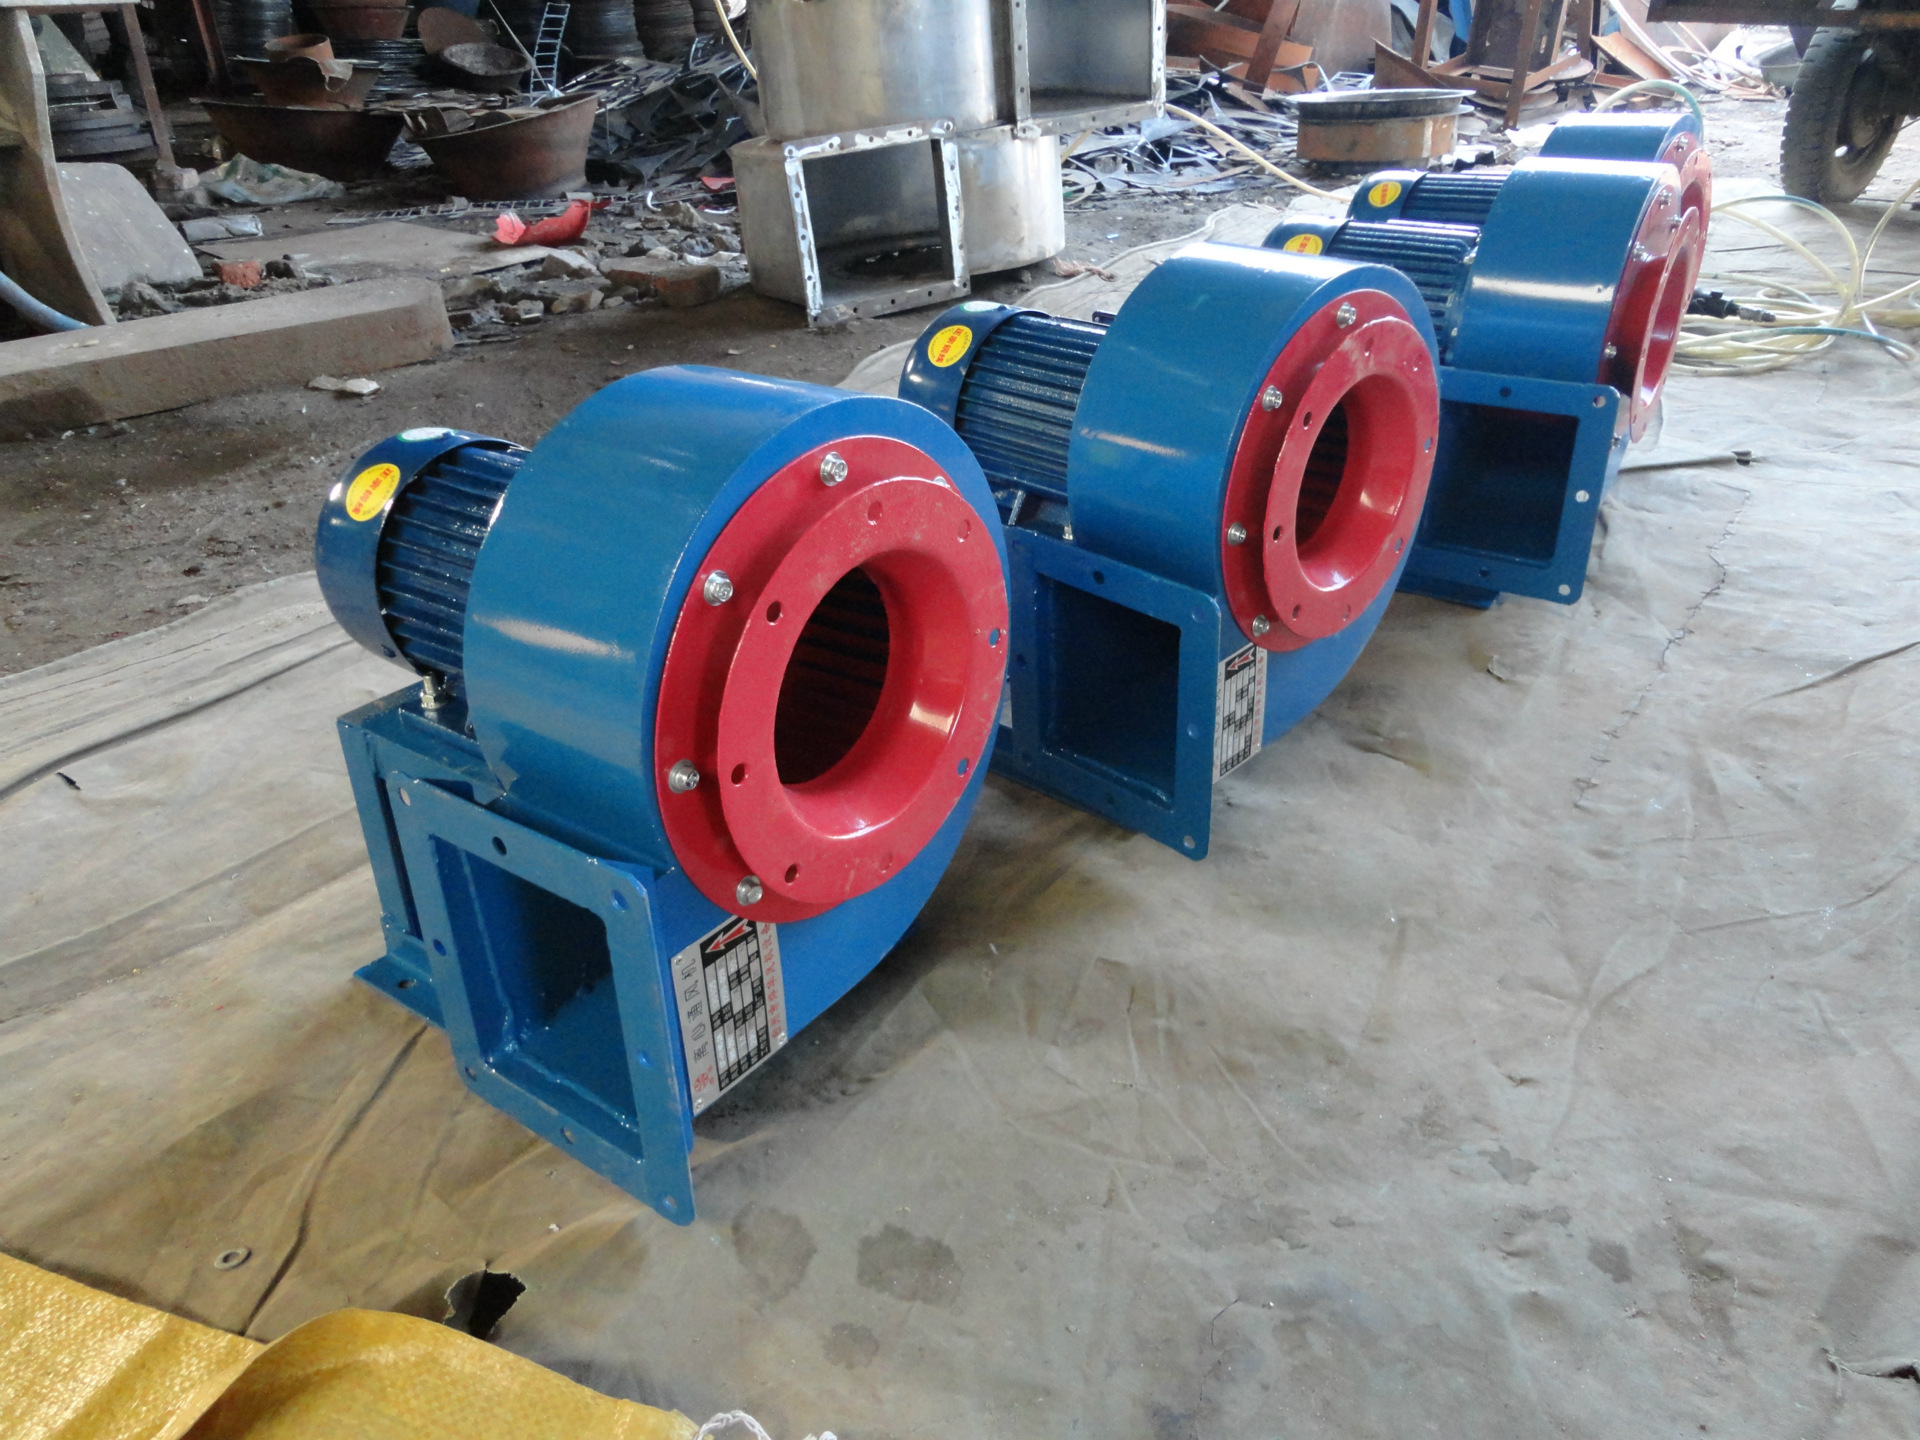 Natural ventilation multivane blower factory direct CF-11NO:4 low noise fan centrifugal fan